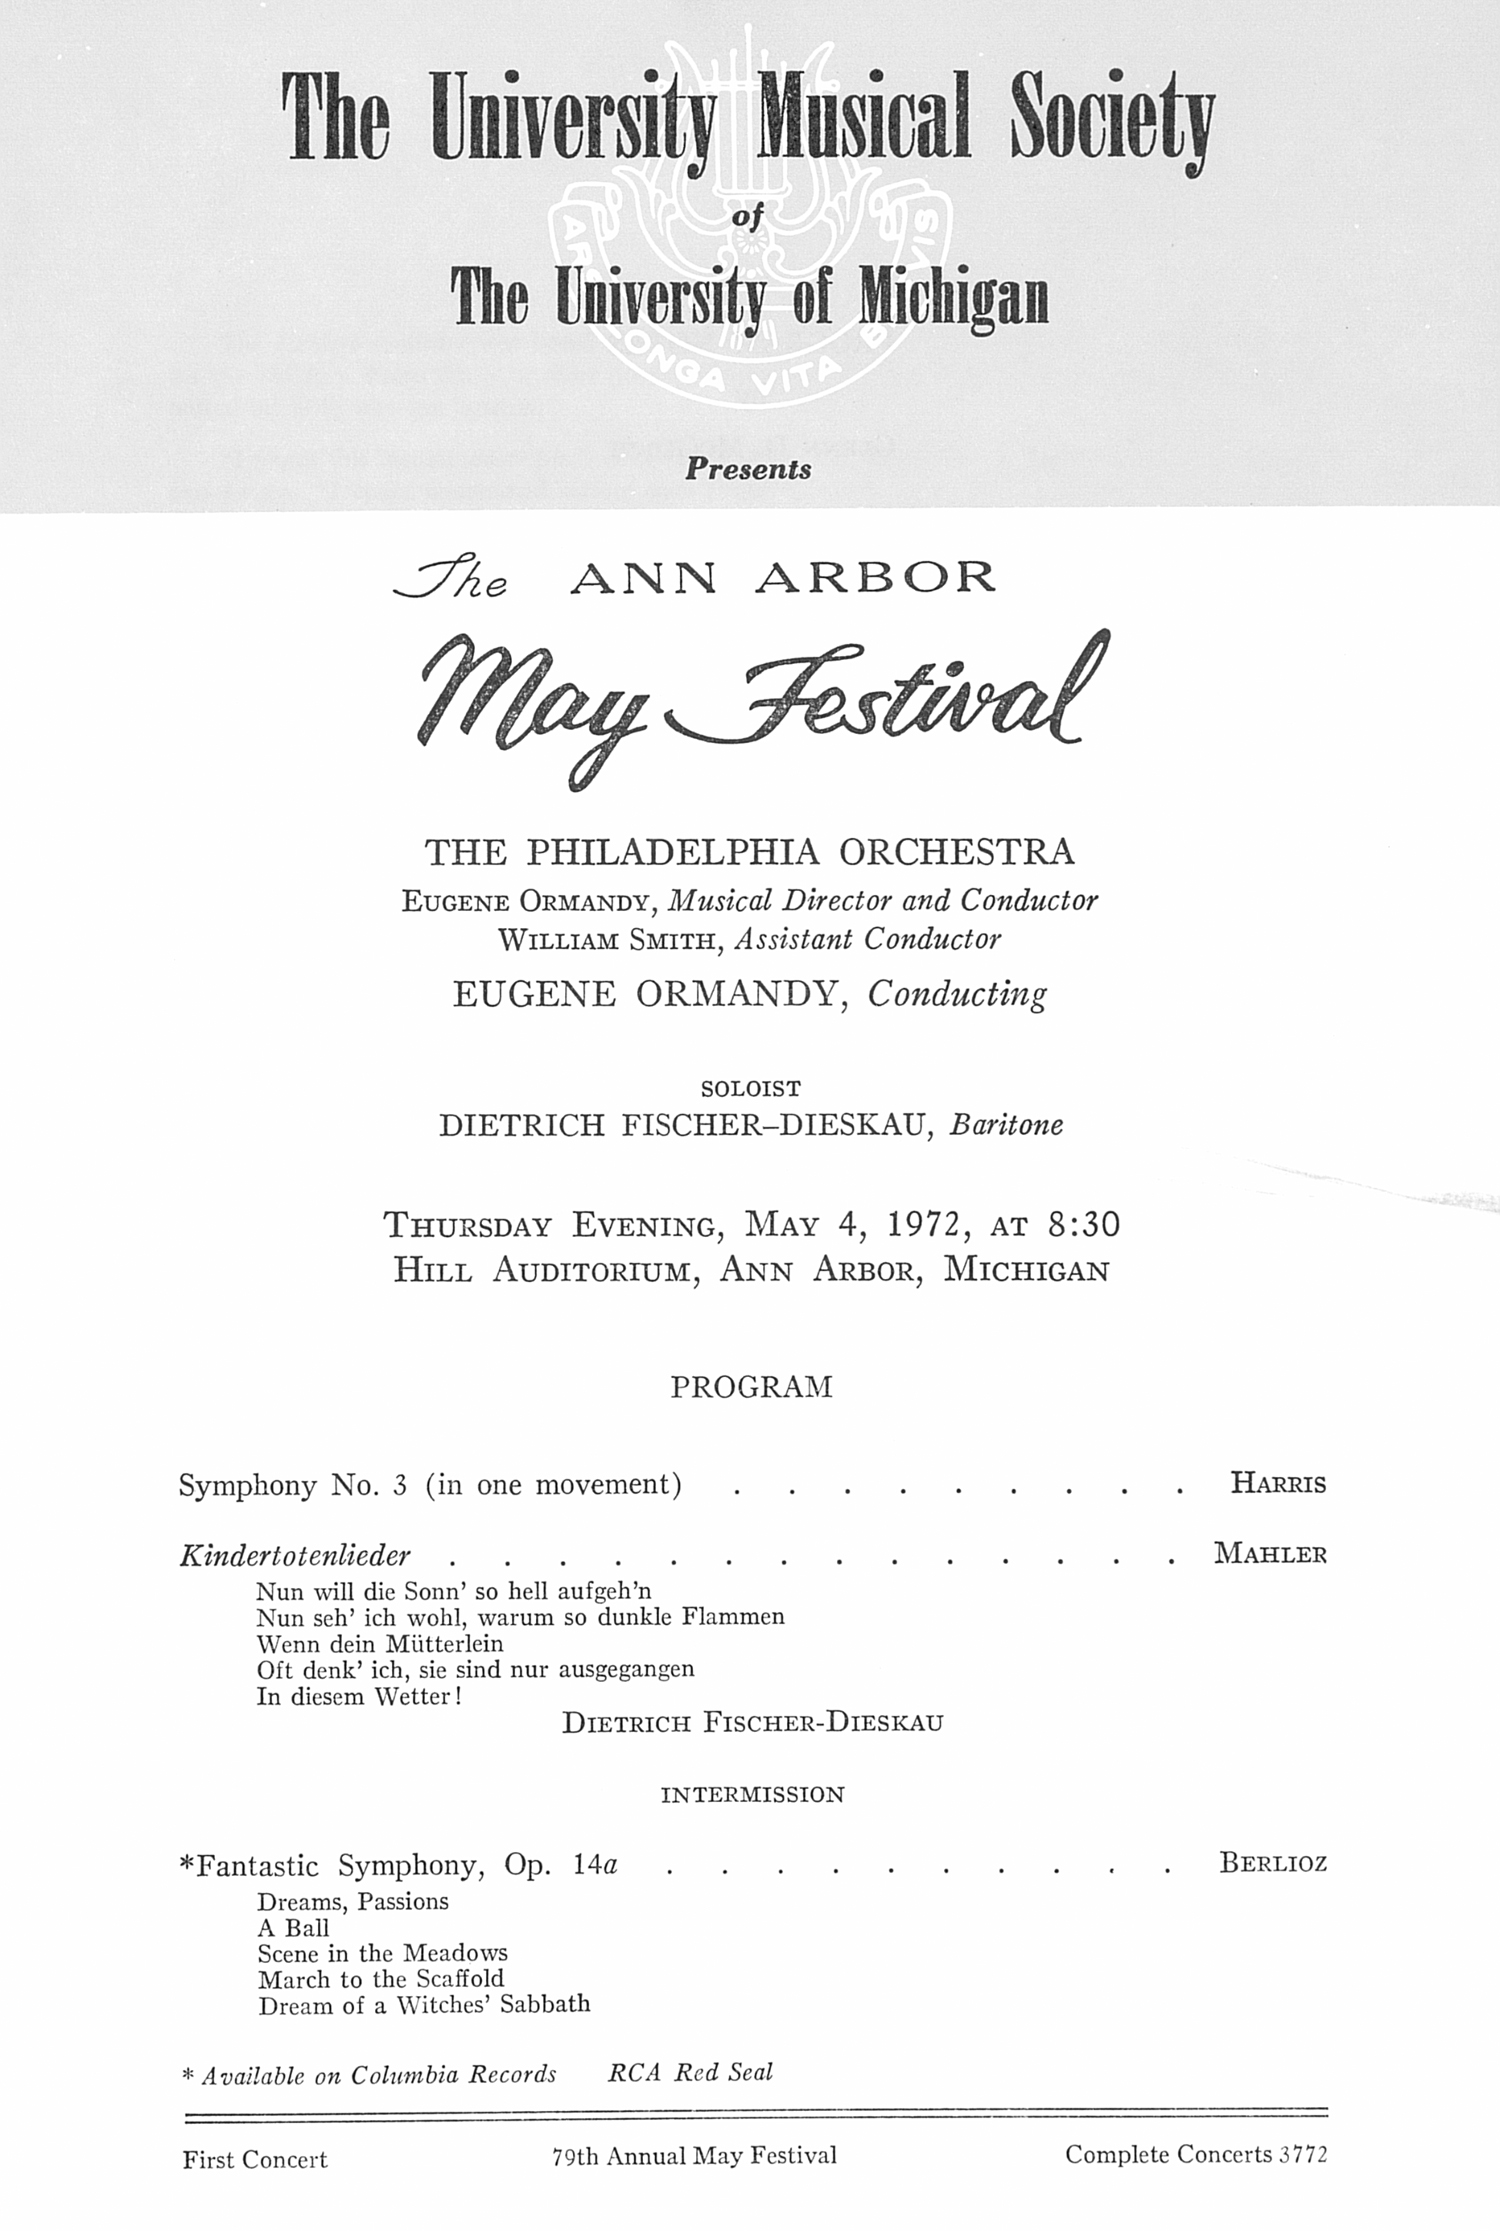 UMS Concert Program, May 4, 1972: The Ann Arbor May Festival -- The Philadelphia Orchestra image